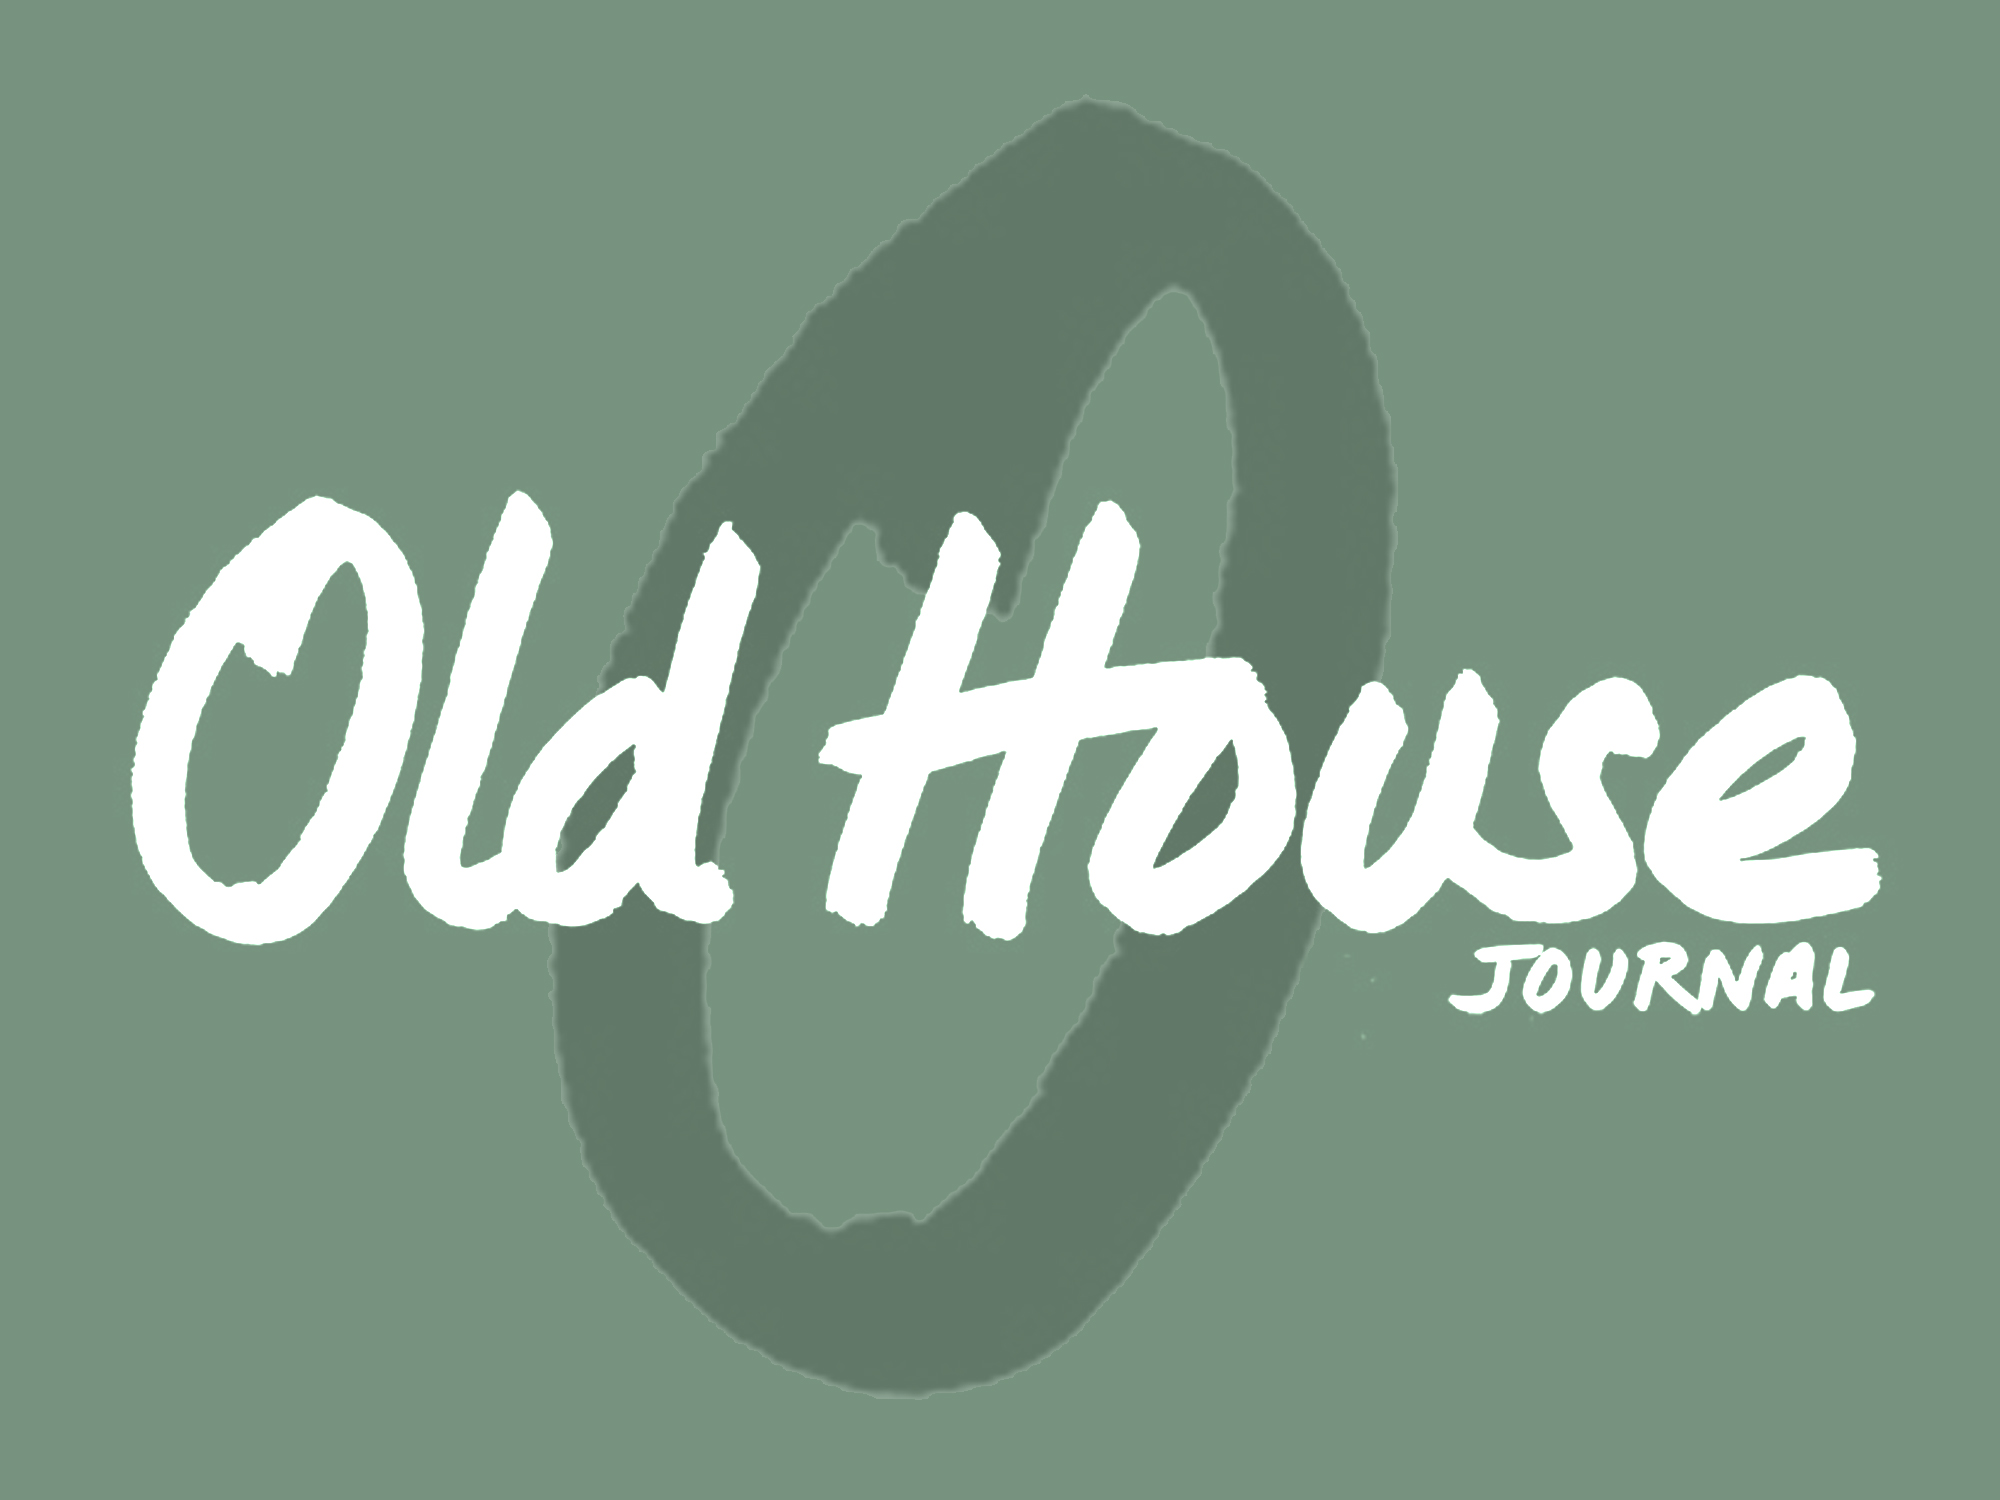 Old House Online